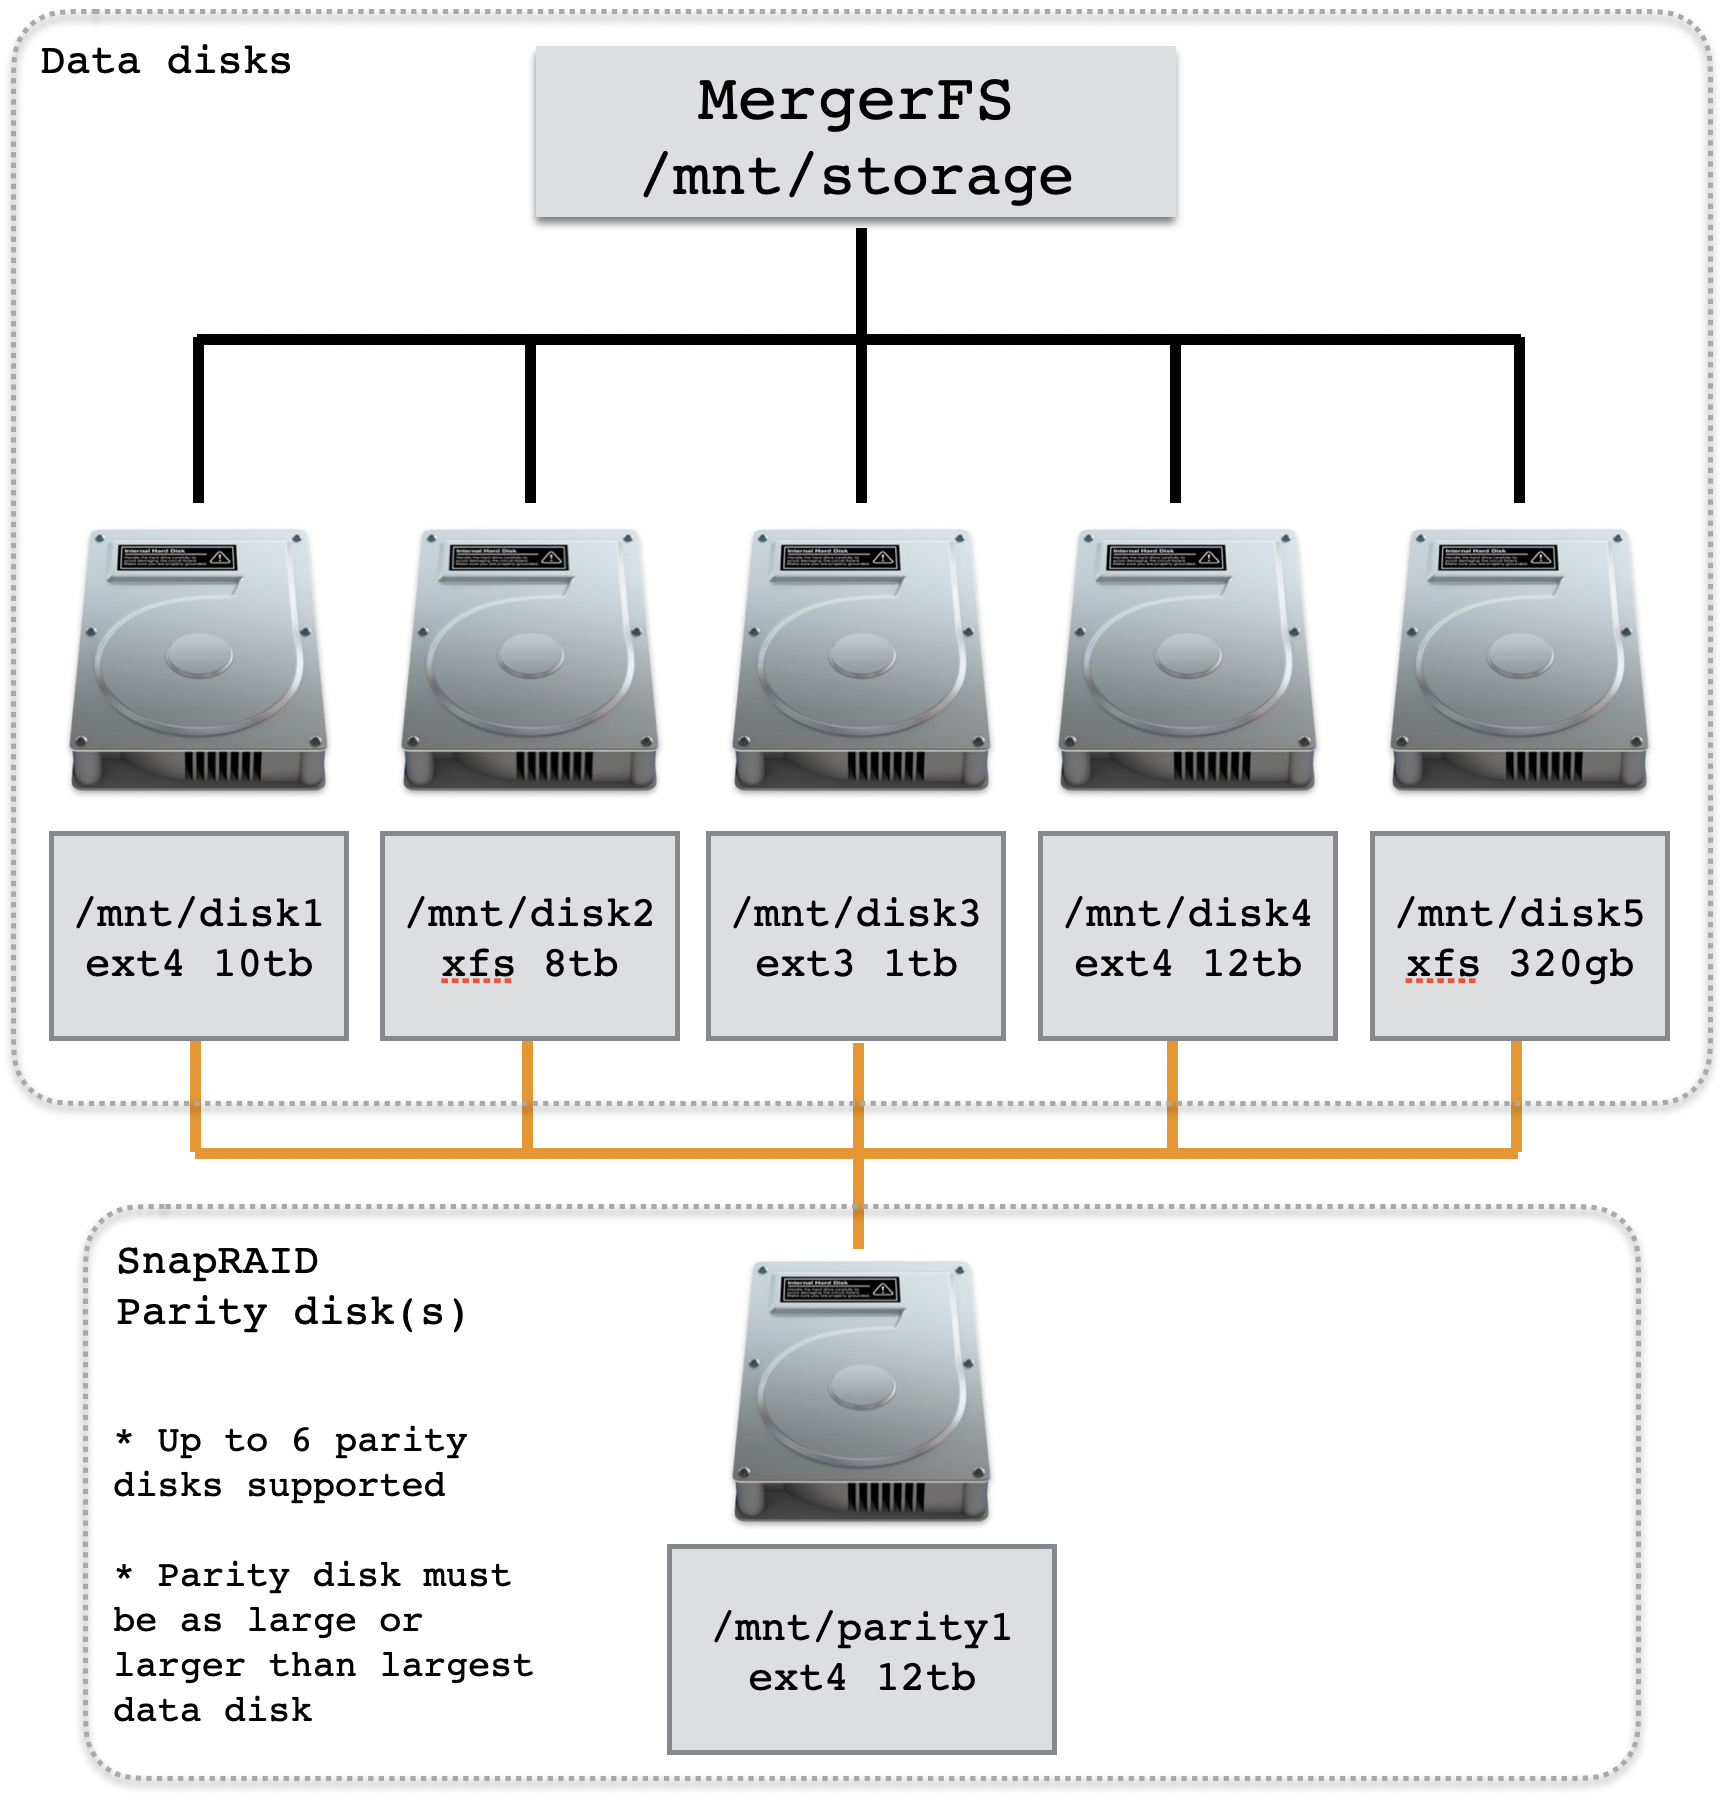 mergerfs-snapraid-diagram